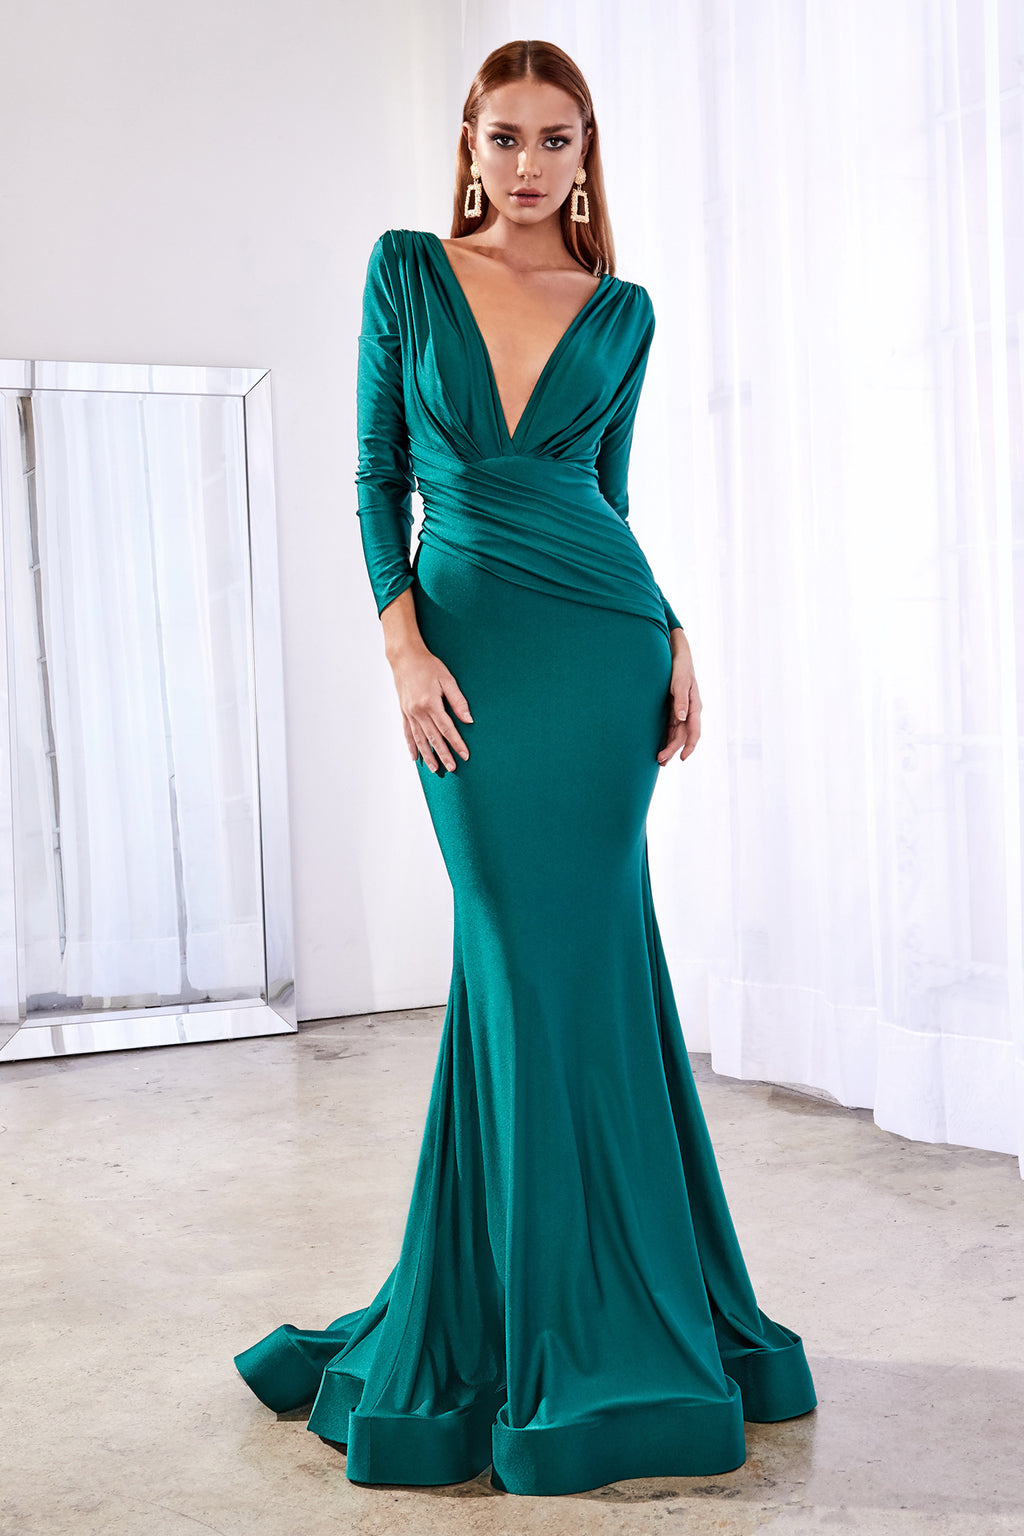 JERSEY GOWN - EMERALD | CD0168